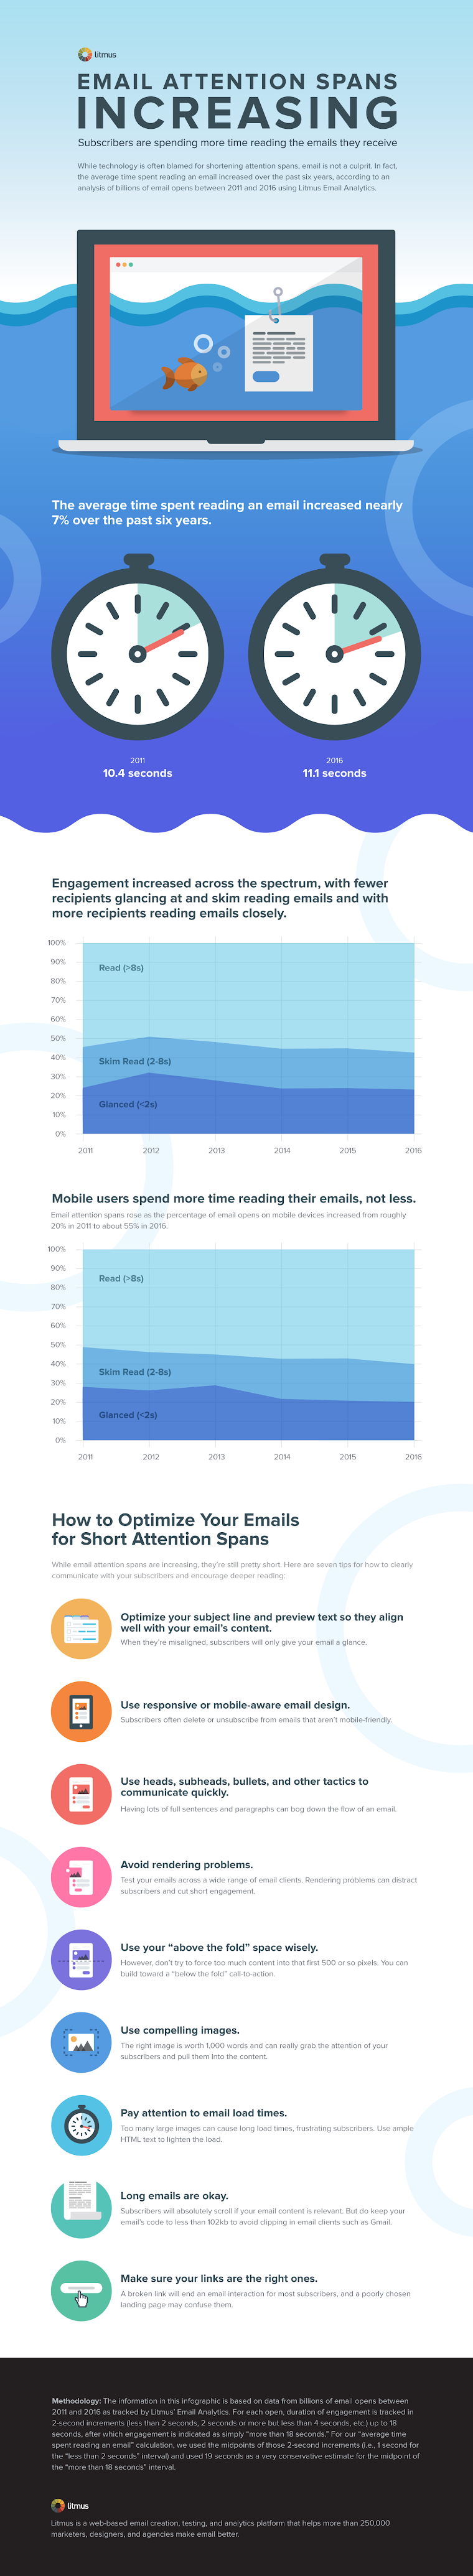 Email Attention Spans Increasing #infographic #Email Marketing #Marketing #Email Spans